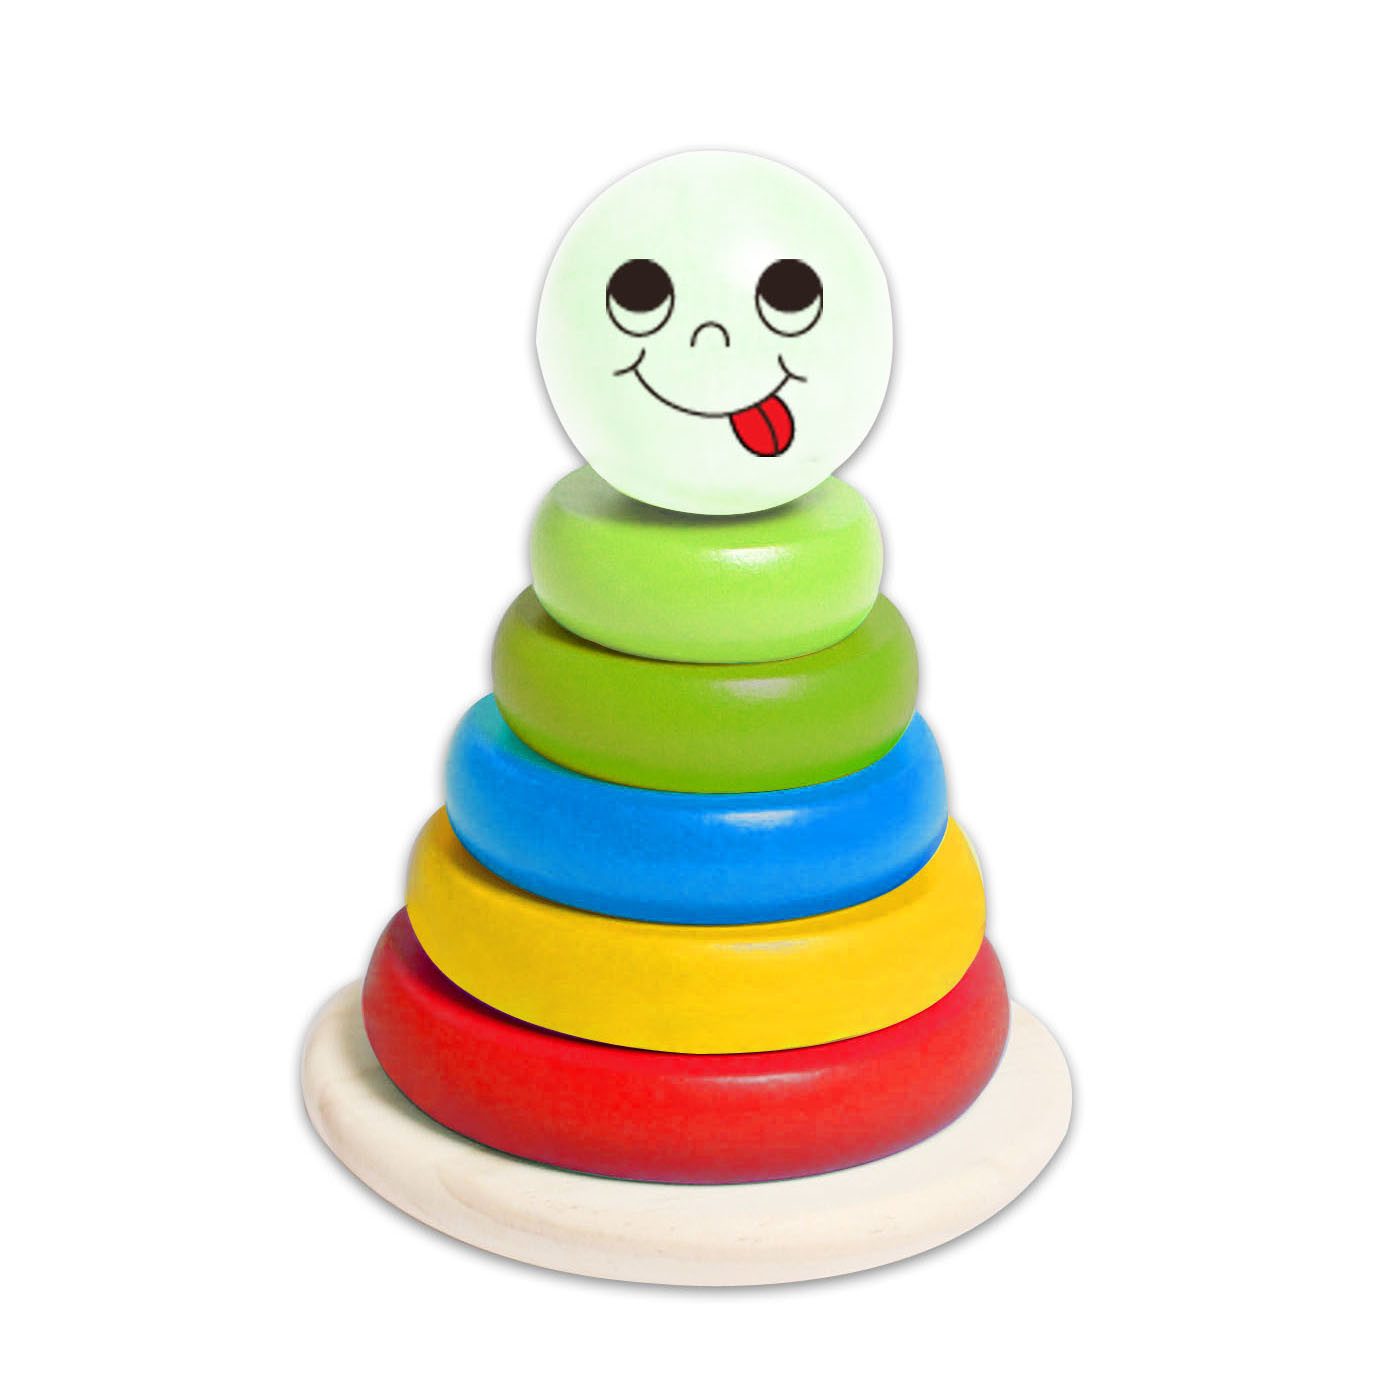 Small Stacking Block Tower Wooden Toys for Babies and Kids